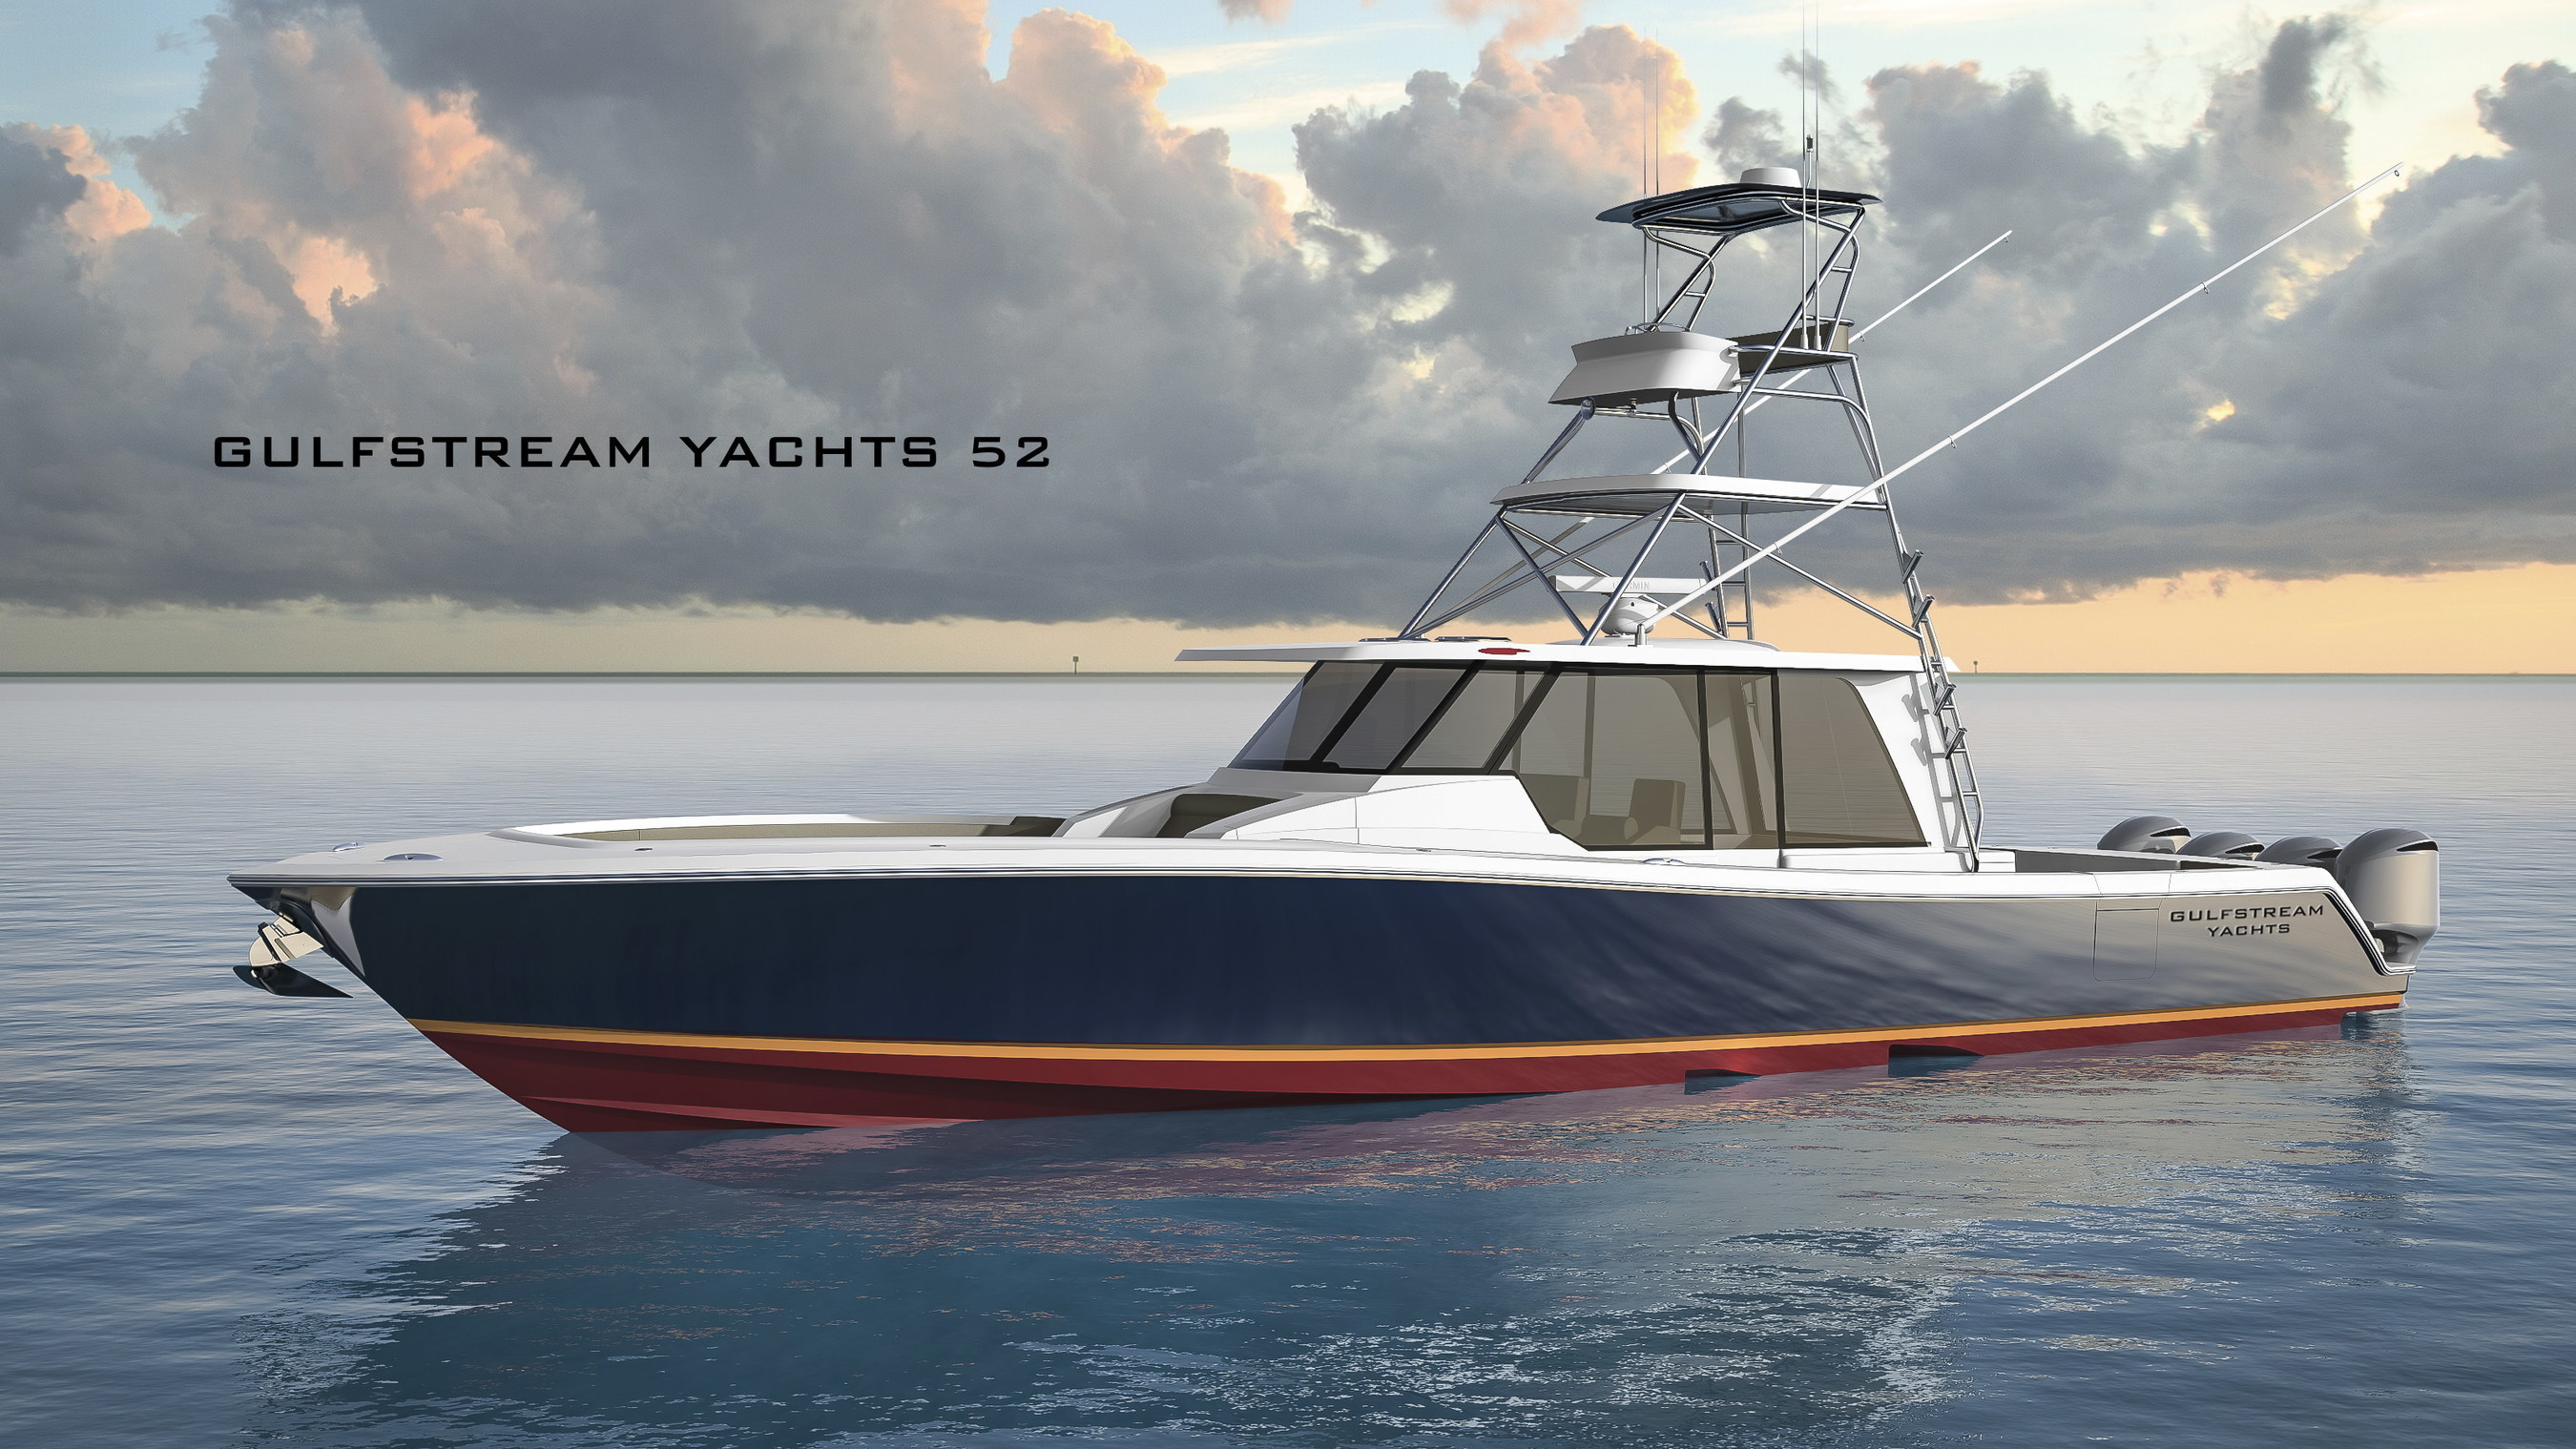 Gulfstream Yachts Unveils New 52 Foot Center Console Boat